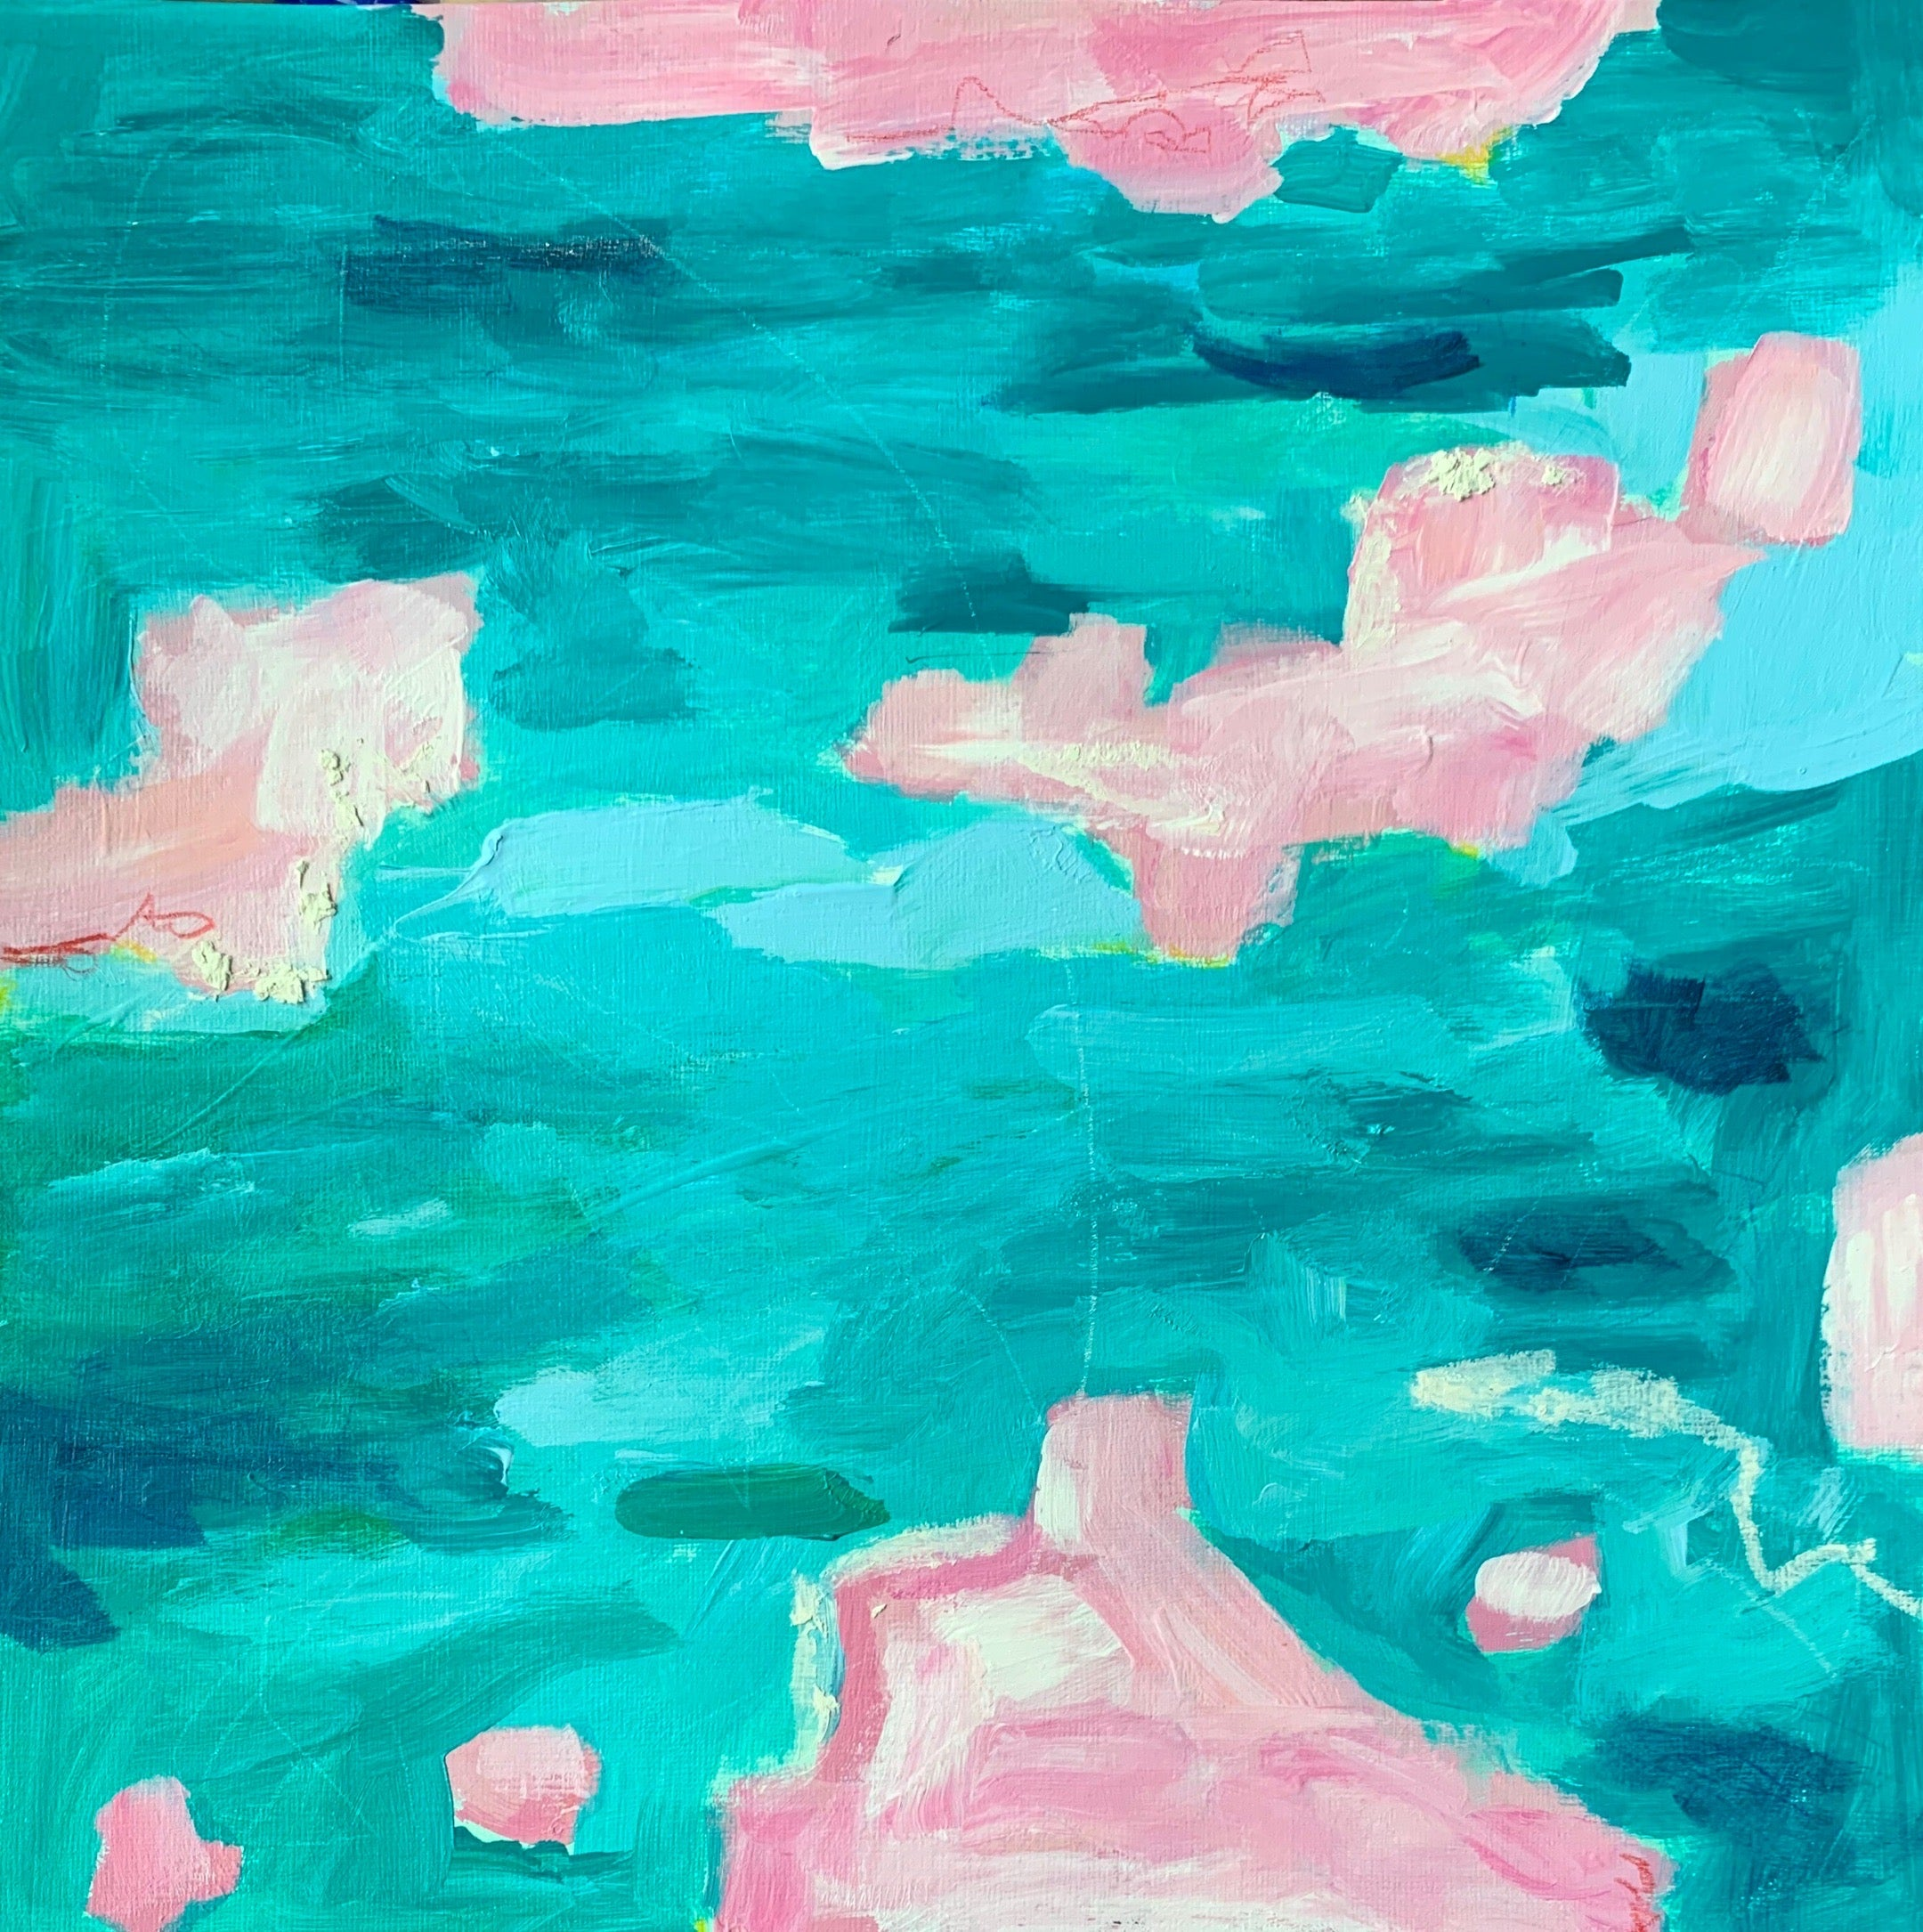 """Depths of Turquoise:1-3"" 12x36"